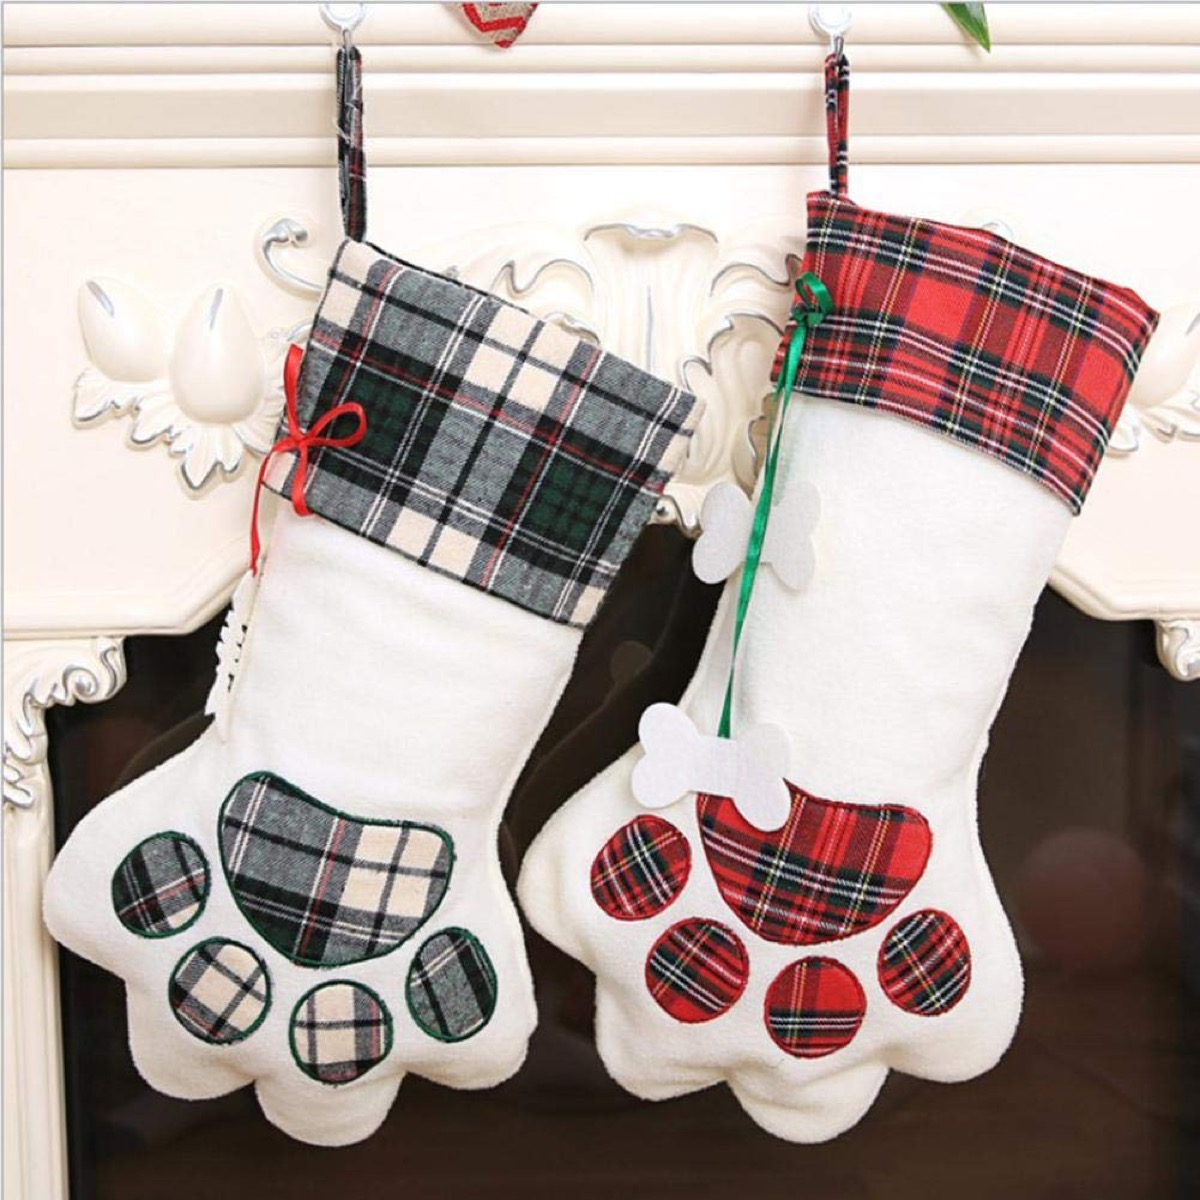 two plaid and white stockings in dog paw pattern